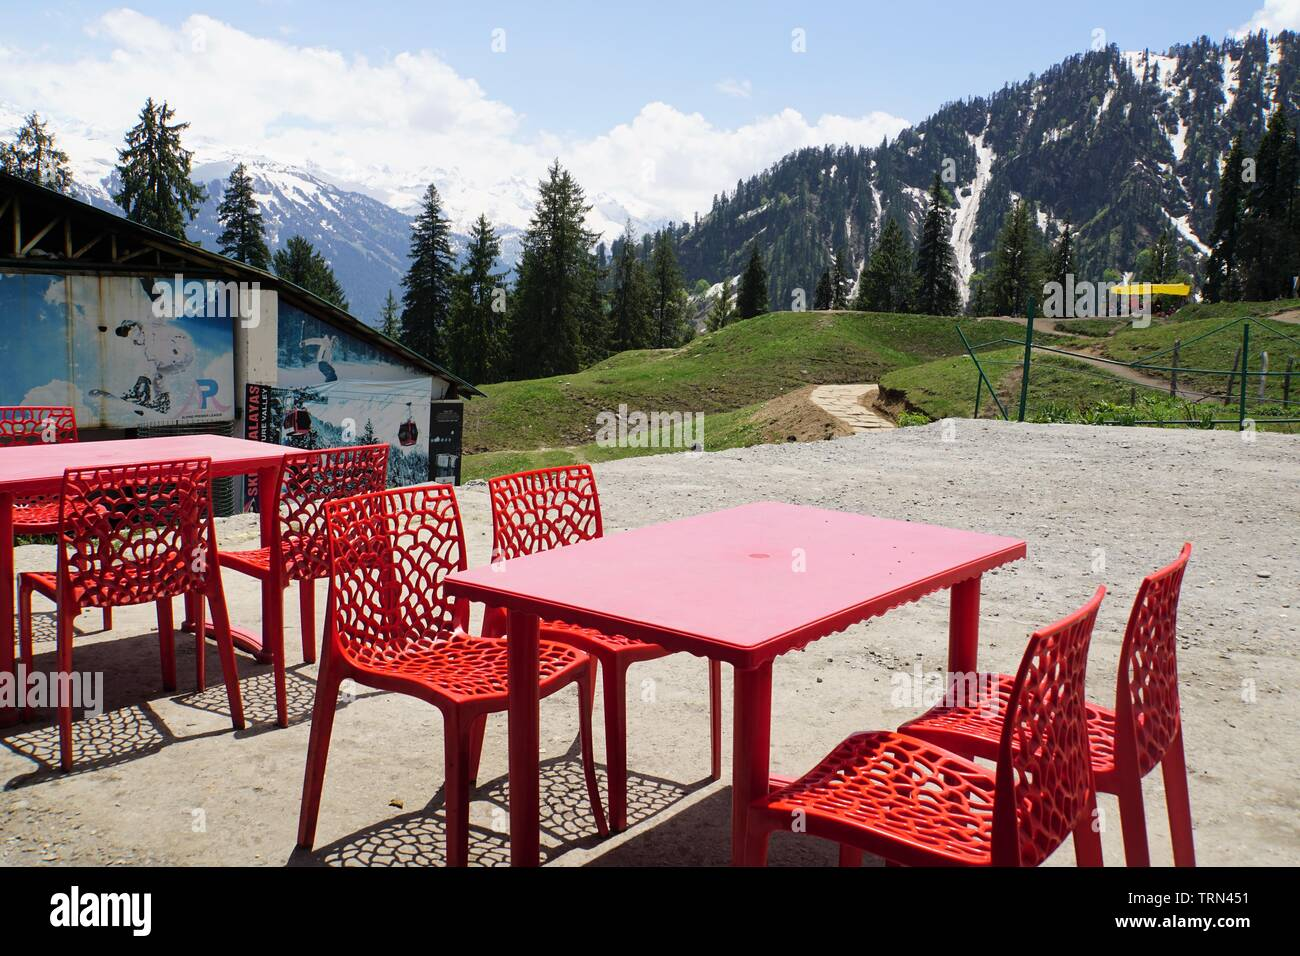 Red Tables and Chairs with a Scenic View of the Himalayas - Stock Image